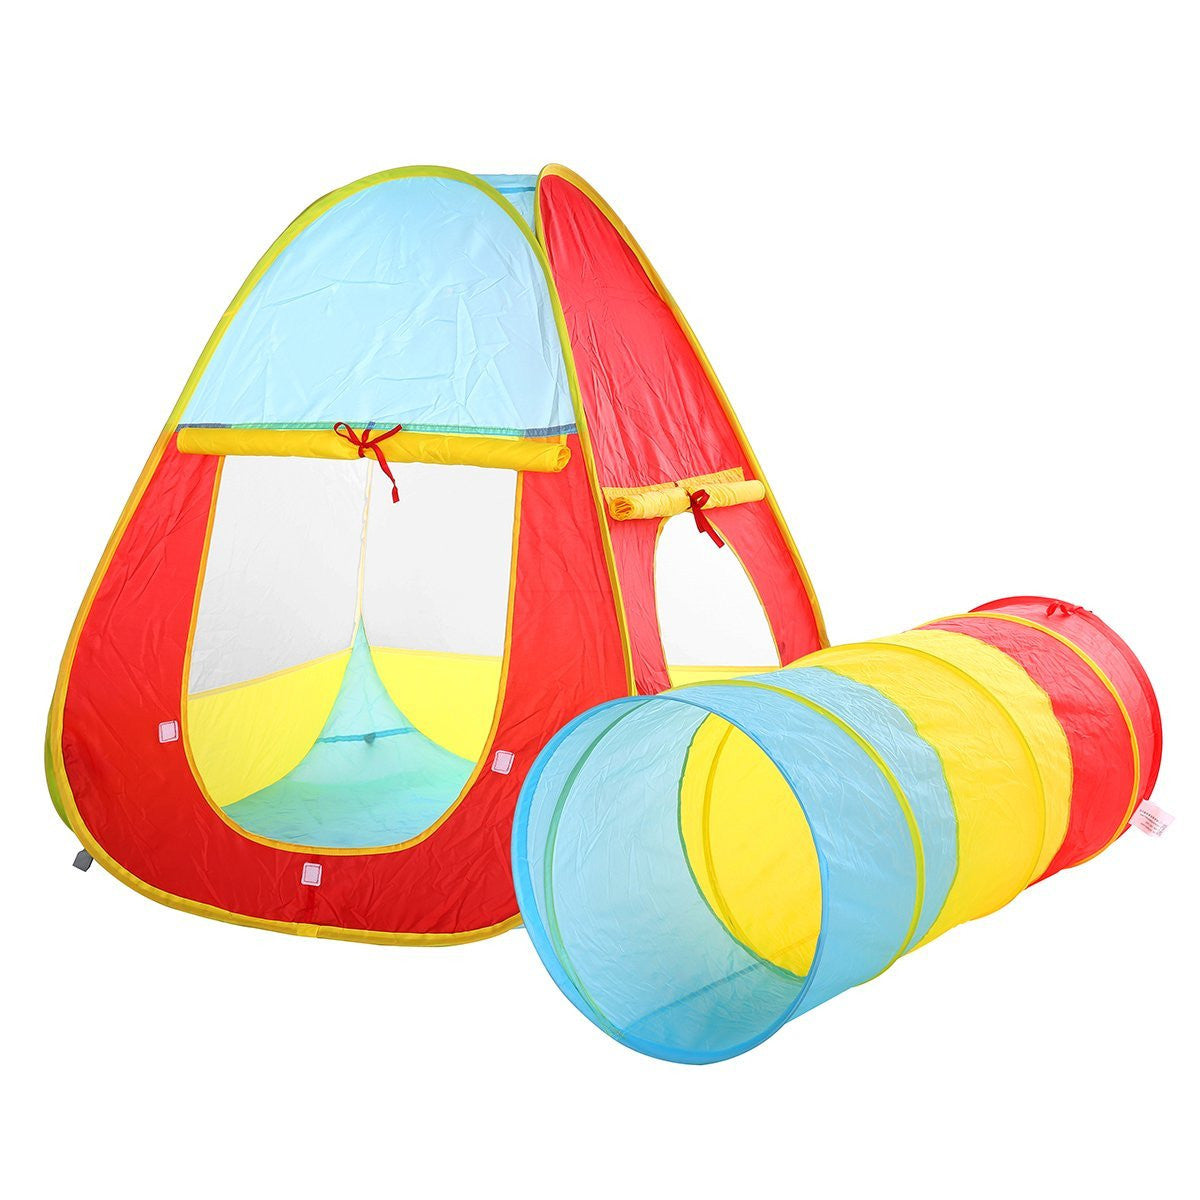 2 in 1 Childrenu0027s Playground Play Tent House and Tube Tunnel for Kids  sc 1 st  TRUEDAYS & 2 in 1 Childrenu0027s Playground Play Tent House and Tube Tunnel for ...